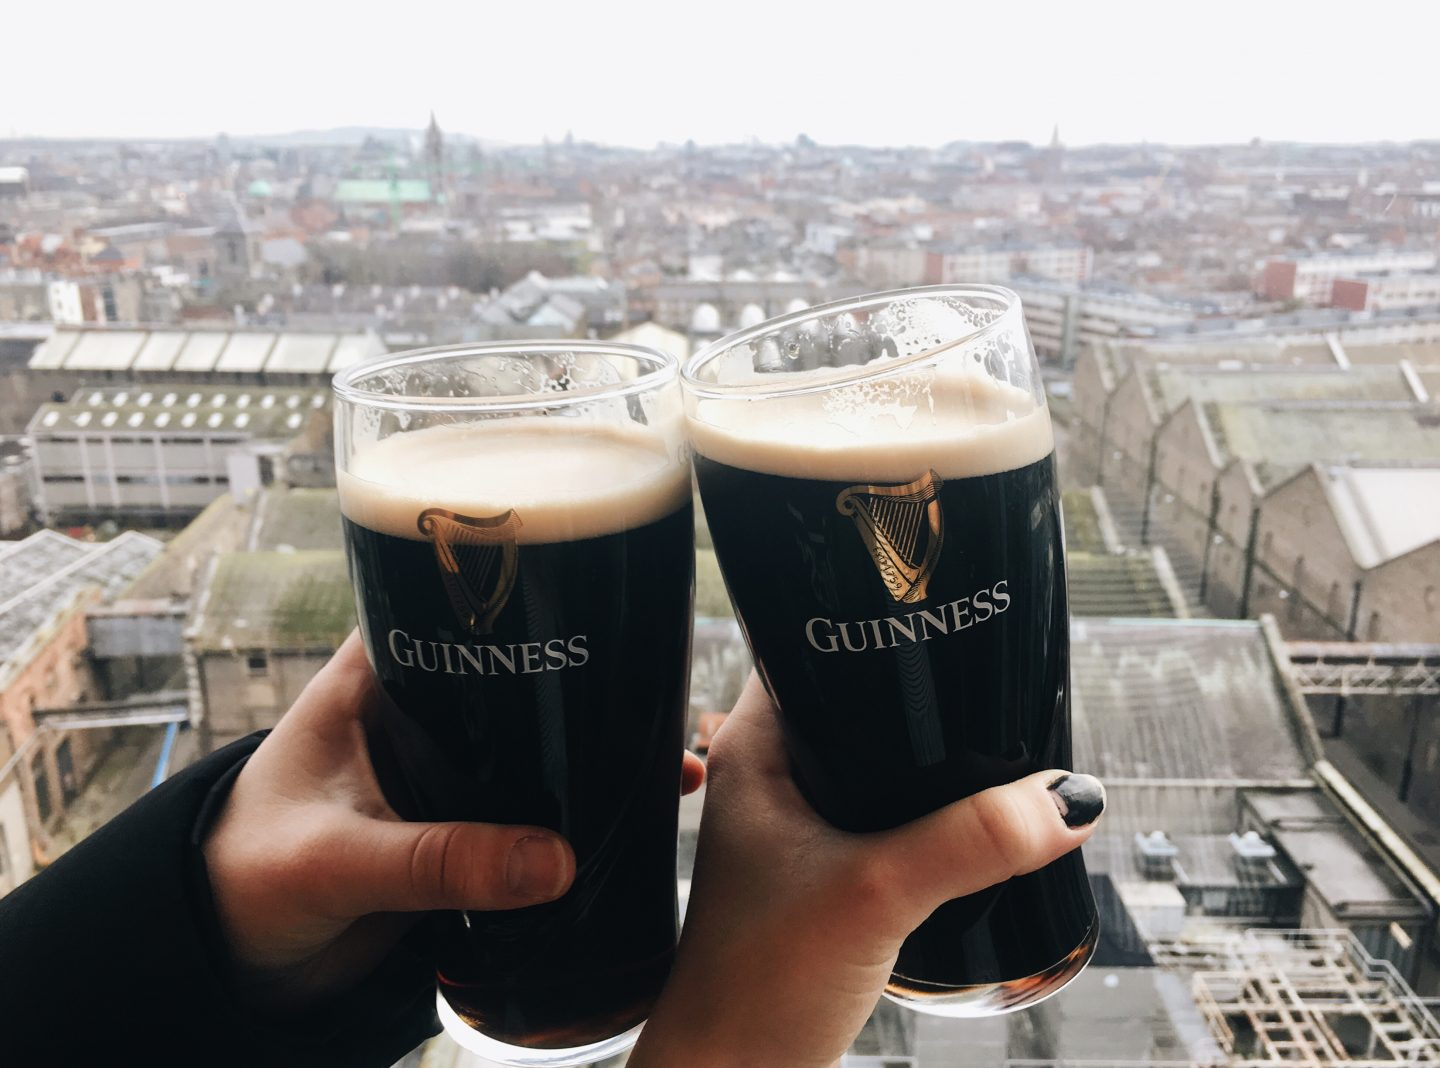 Enjoying pints of beer at the top of the Guinness Factory in Dublin!